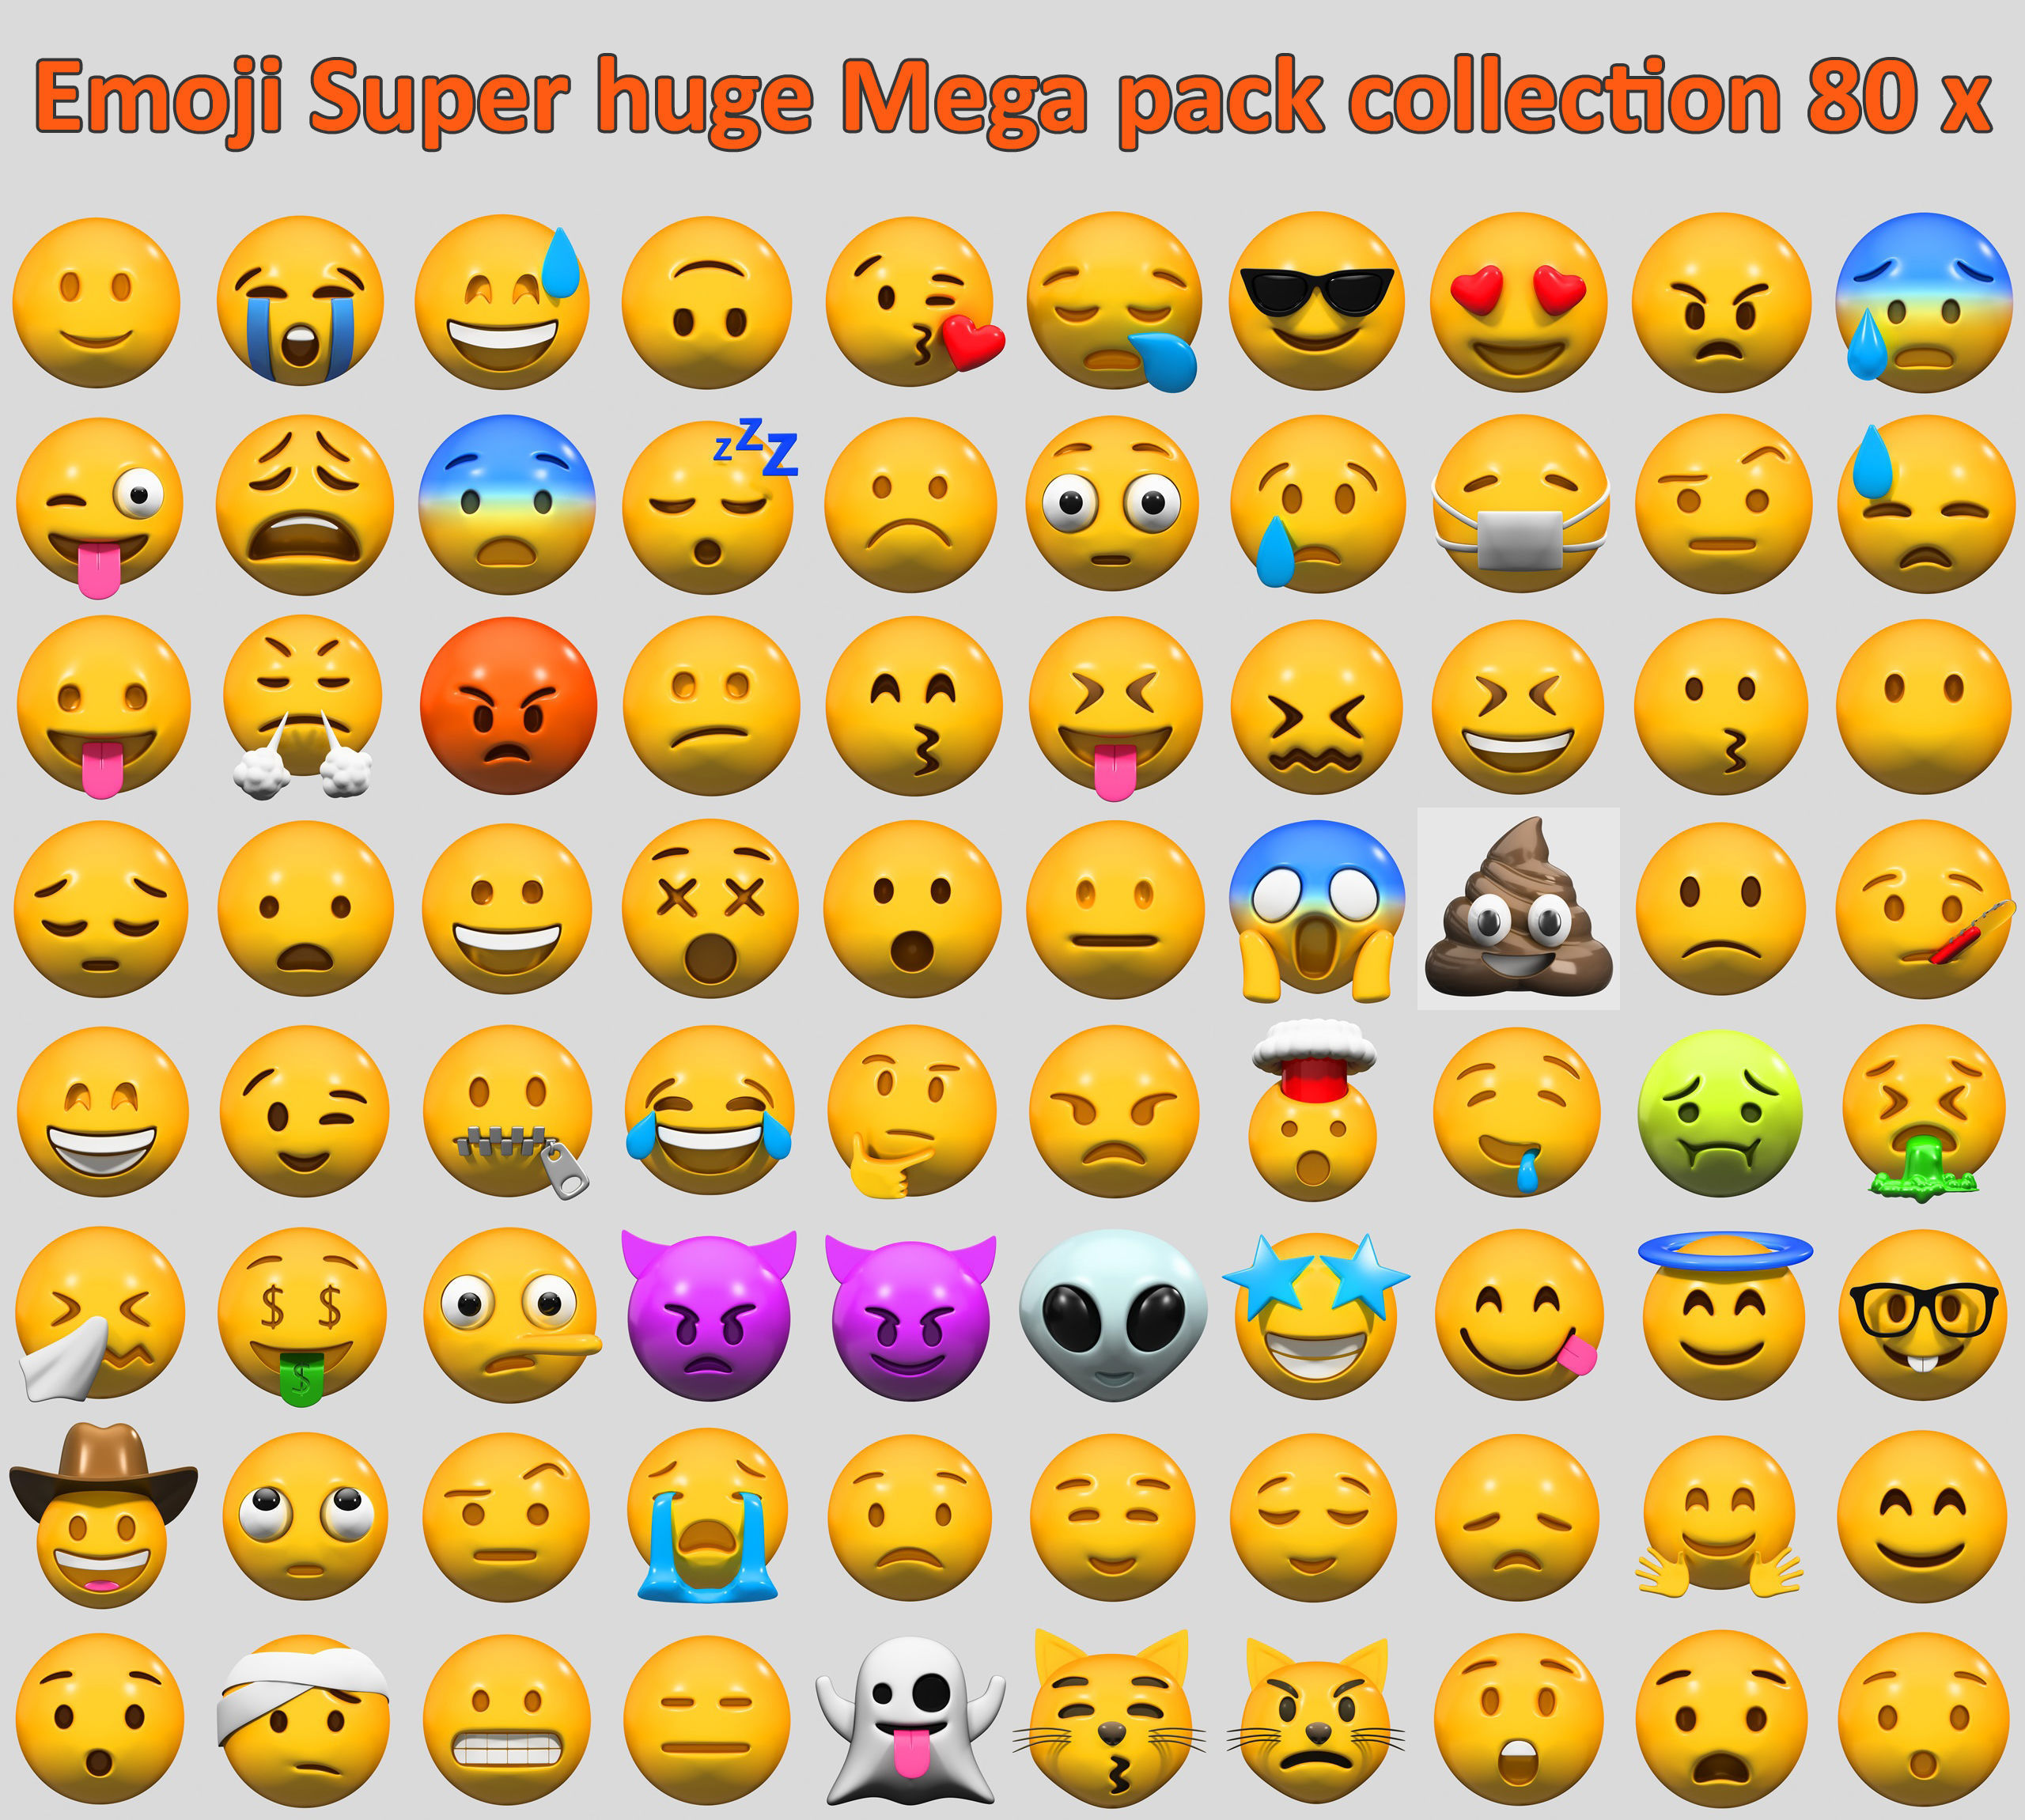 Emoji Super huge Mega pack collection 80 x